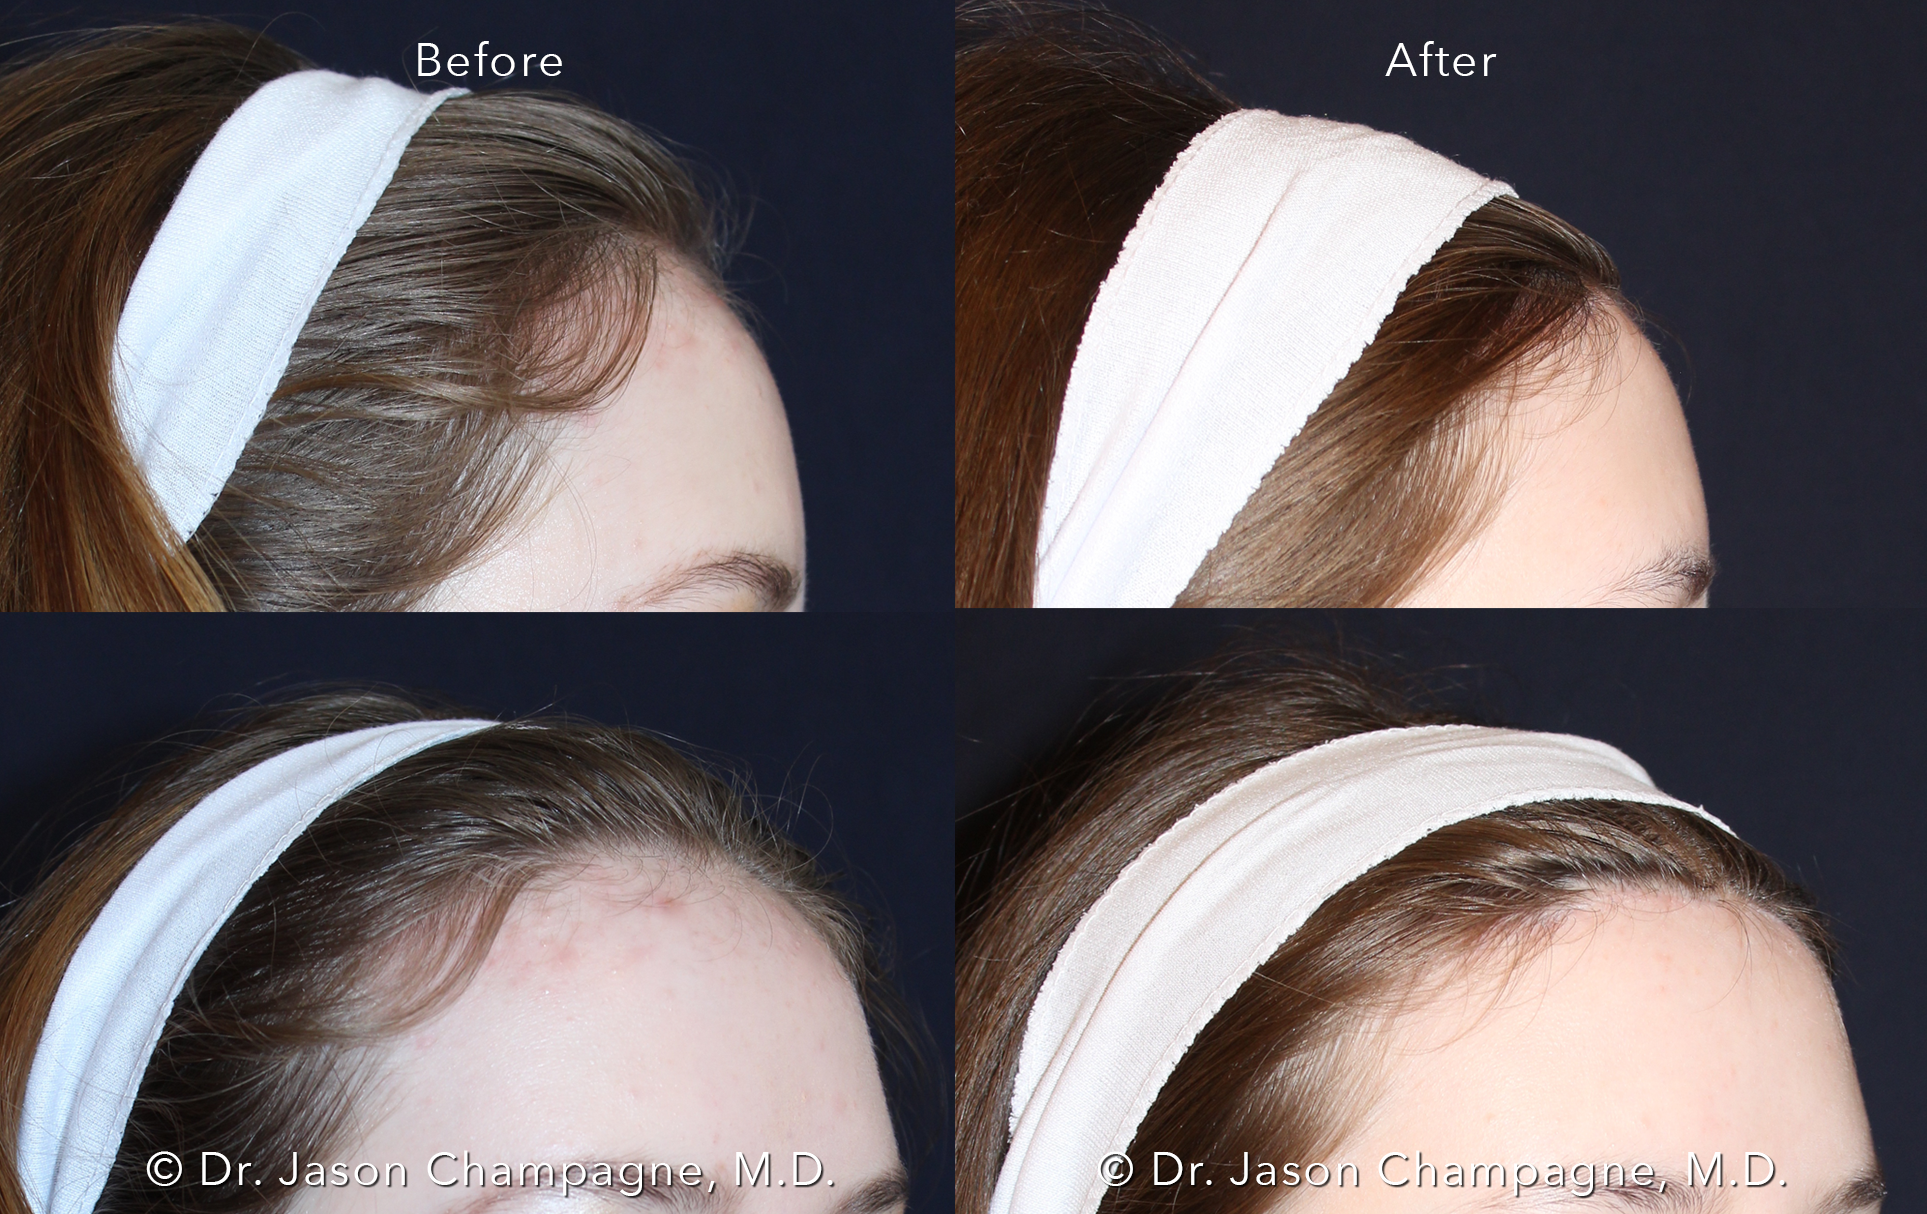 Dr-Jason-Champagne-Hairline-Lowering-Before-and-After.png